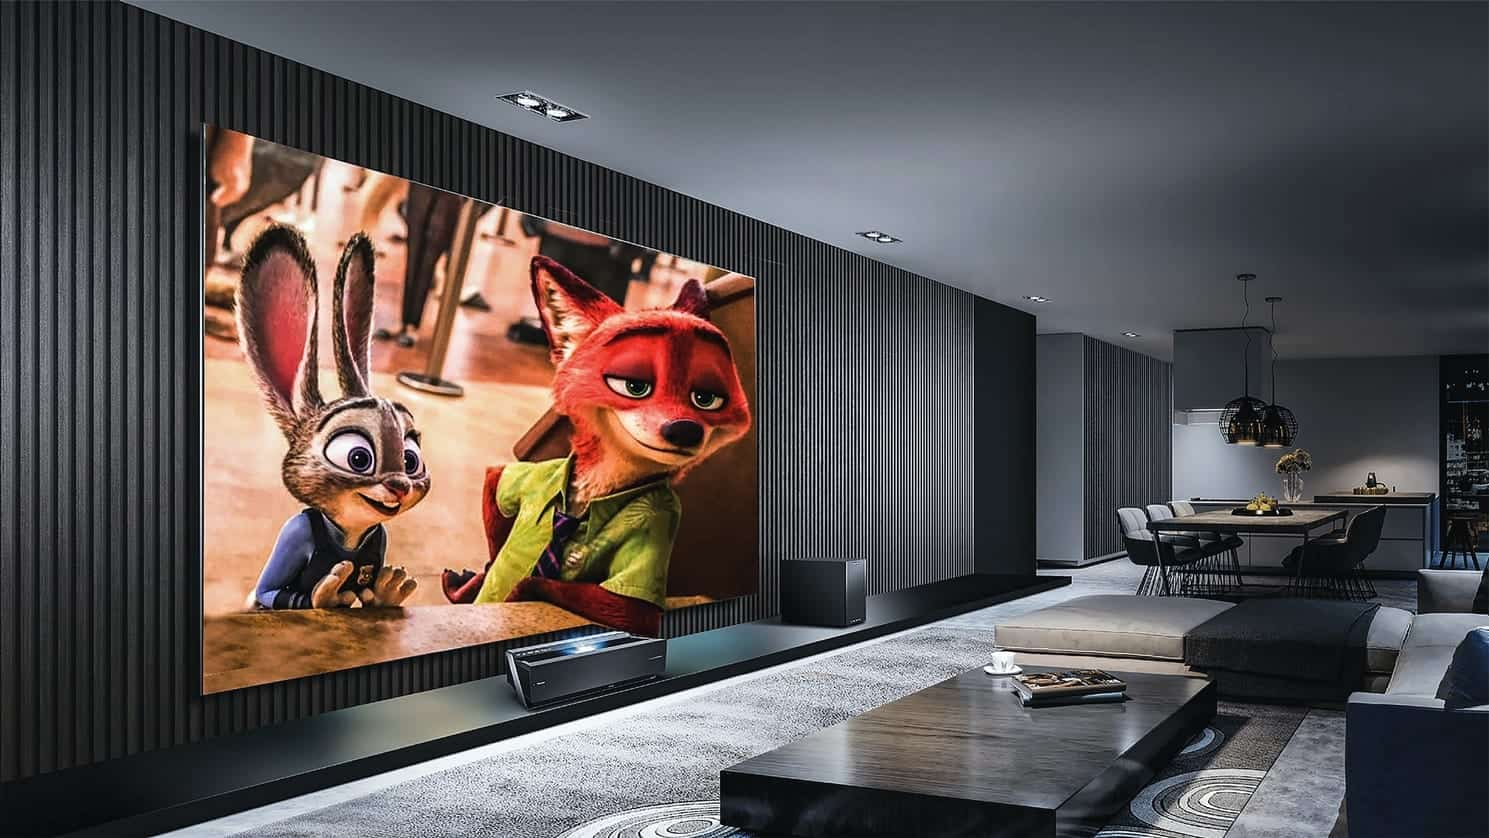 This is a custom home theater installed in dallas texas